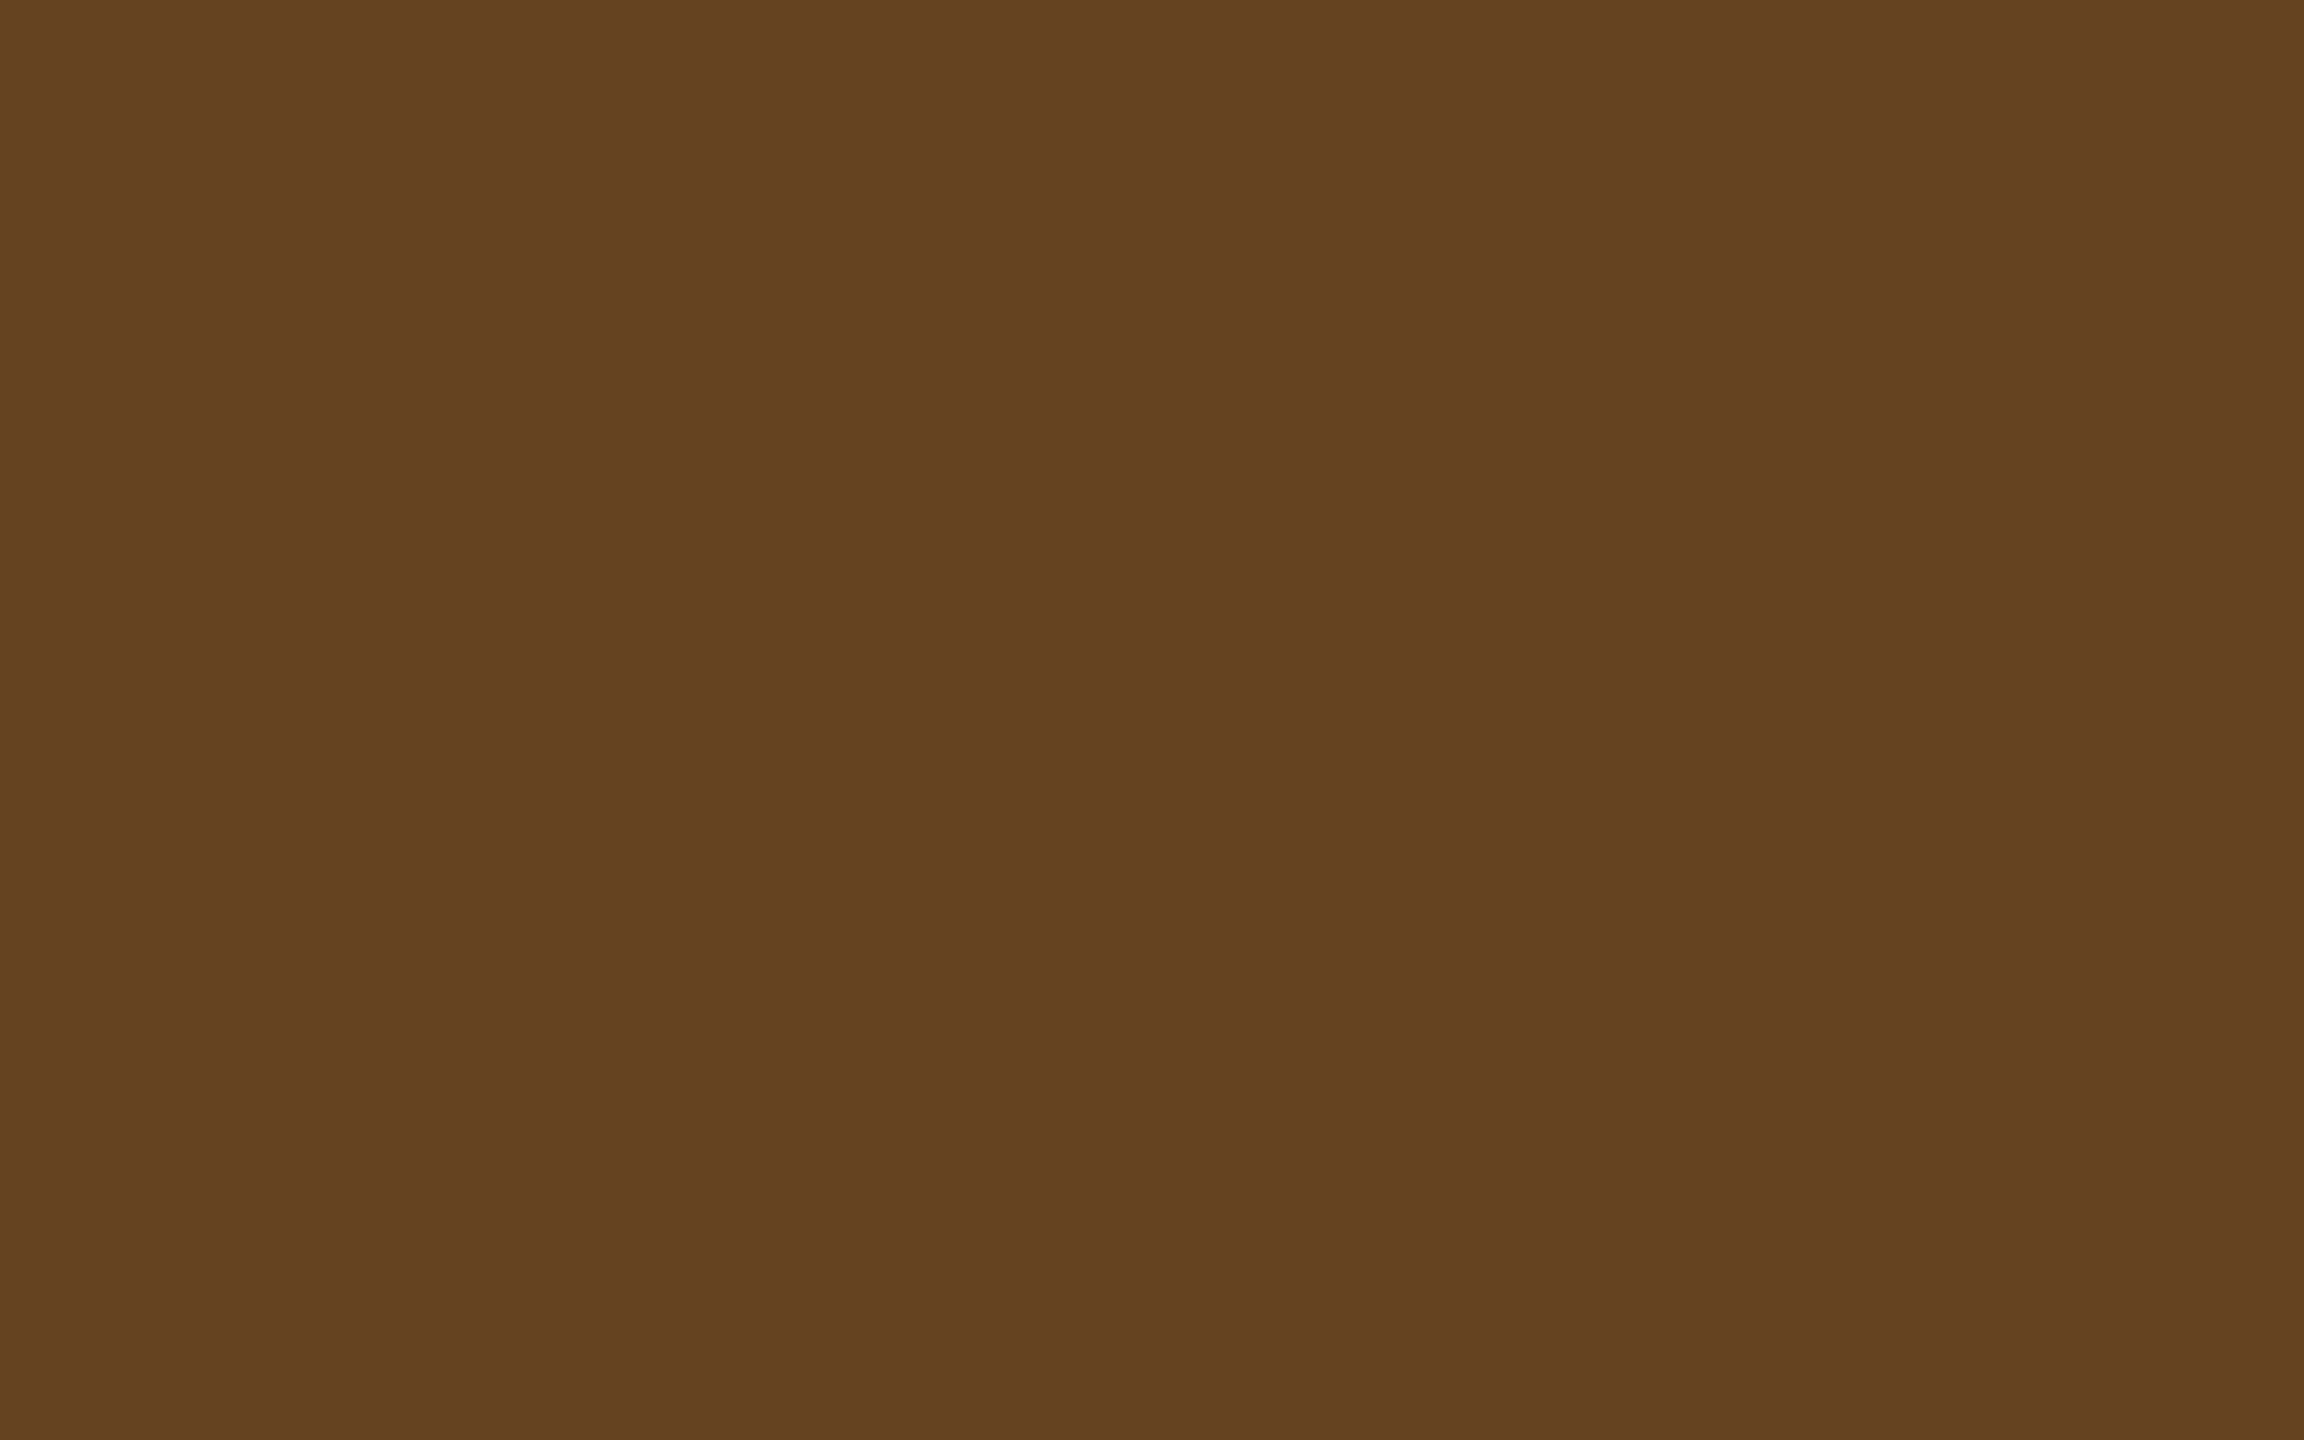 2304x1440 Otter Brown Solid Color Background